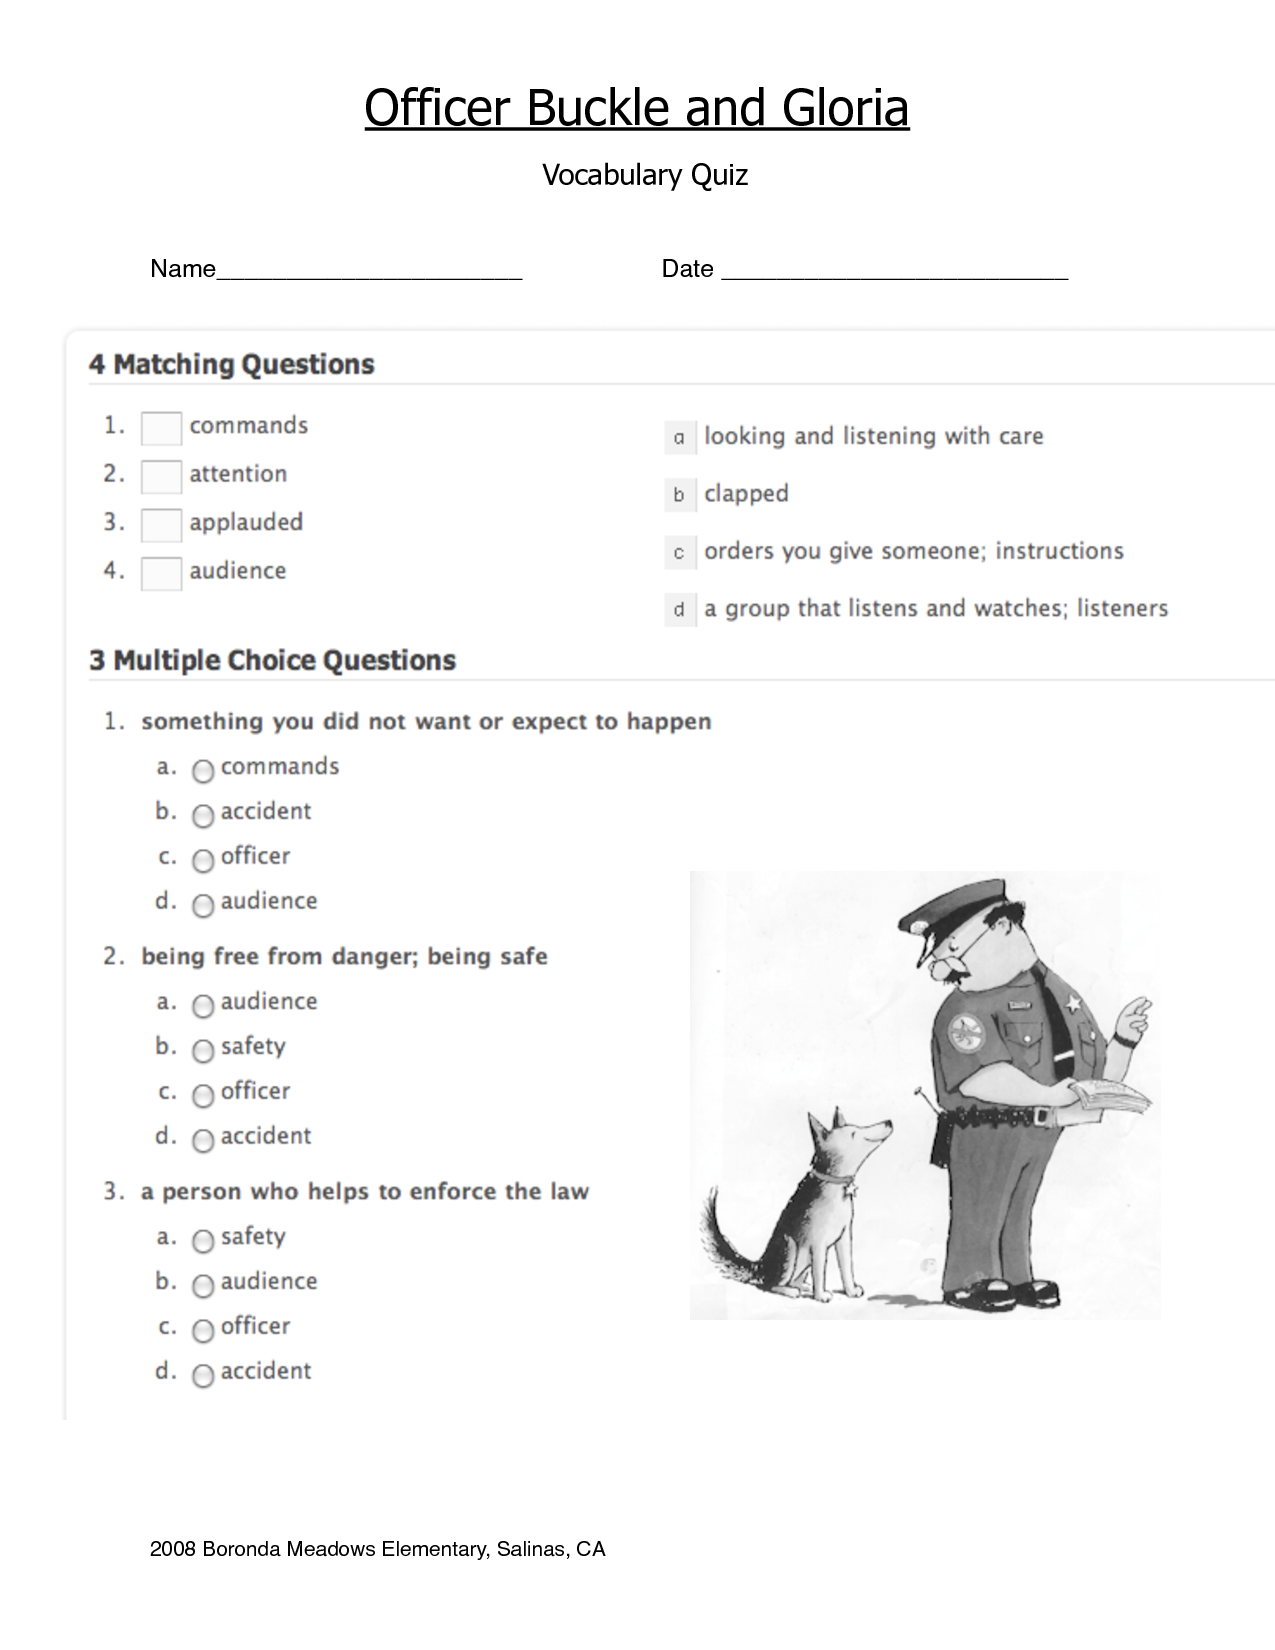 worksheet Officer Buckle And Gloria Worksheets officerbuckleandgloria google search common core anchor chart free officer buckle gloria coloring pages